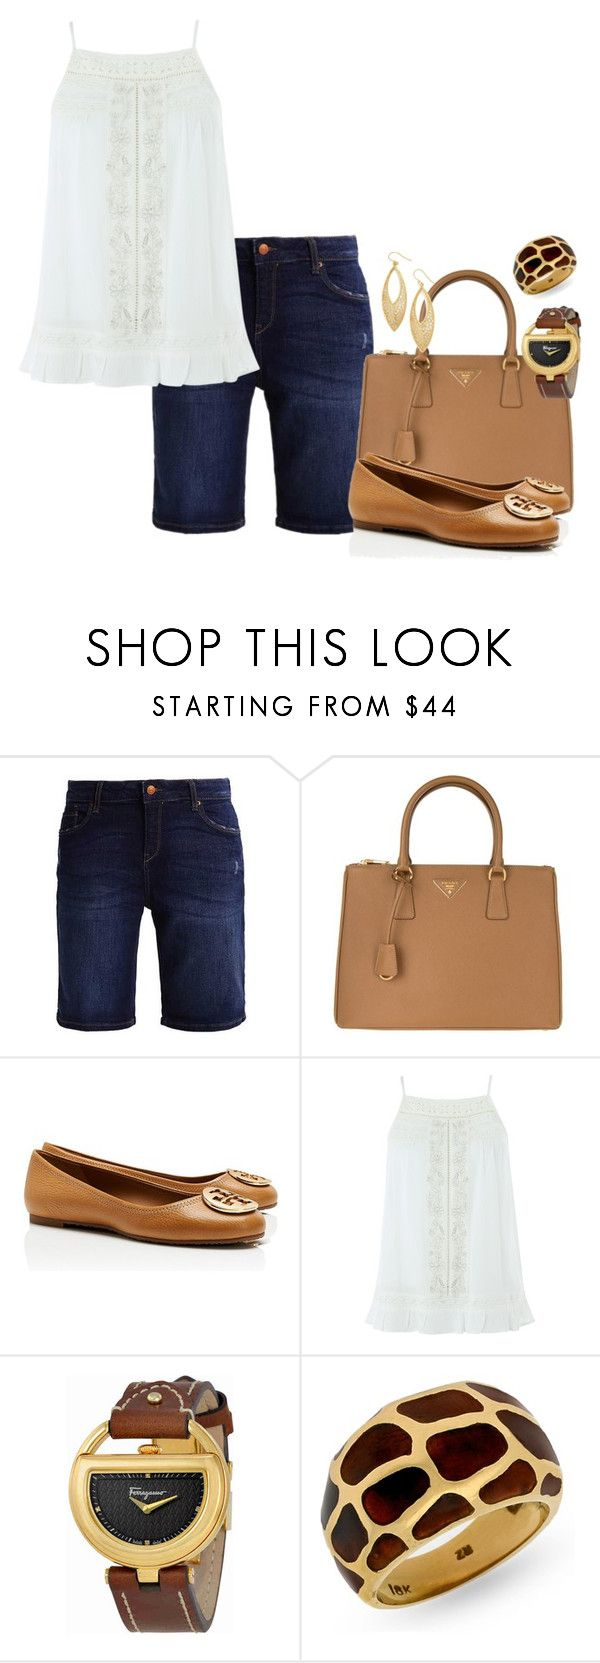 """""""Untitled #2330"""" by skinny-jeannie ❤ liked on Polyvore featuring ESPRIT, Prada, Tory Burch, Monsoon, Salvatore Ferragamo and Argento Vivo"""